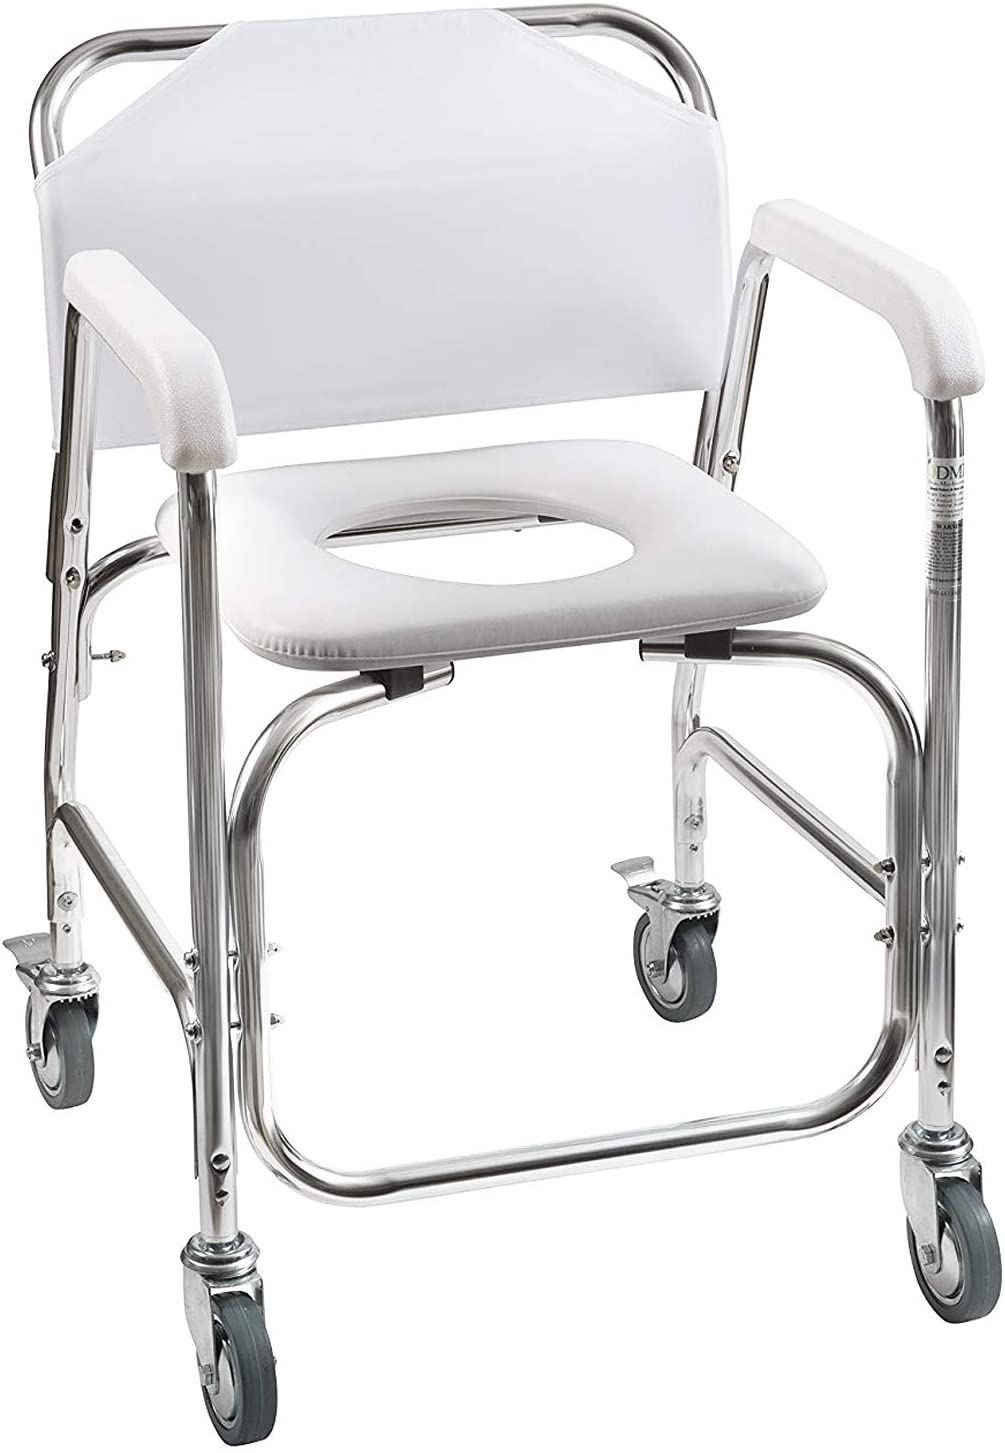 DMI Rolling Shower and Commode Transport Chair with Wheels and Padded Seat  for Handicap, Elderly, Injured and Disabled, 4 lb Weight Capacity